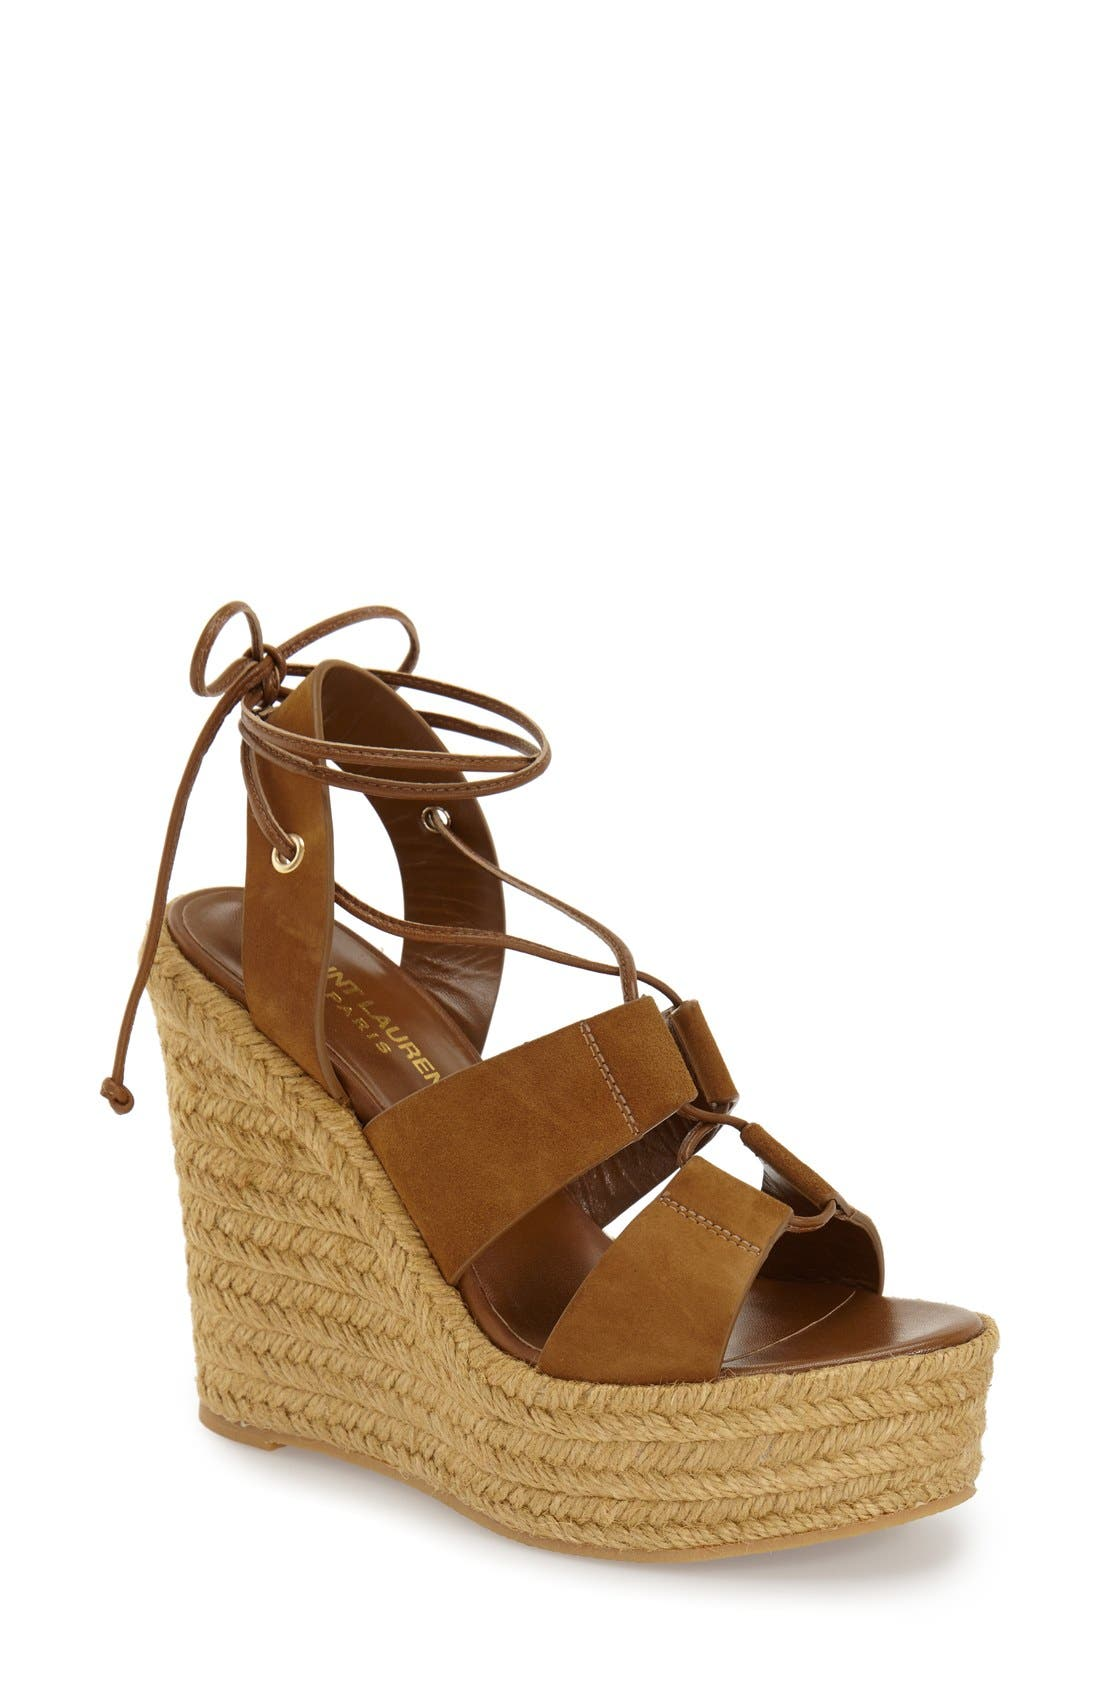 Woven Espadrille Wedge Sandal,                             Main thumbnail 1, color,                             Tan Suede